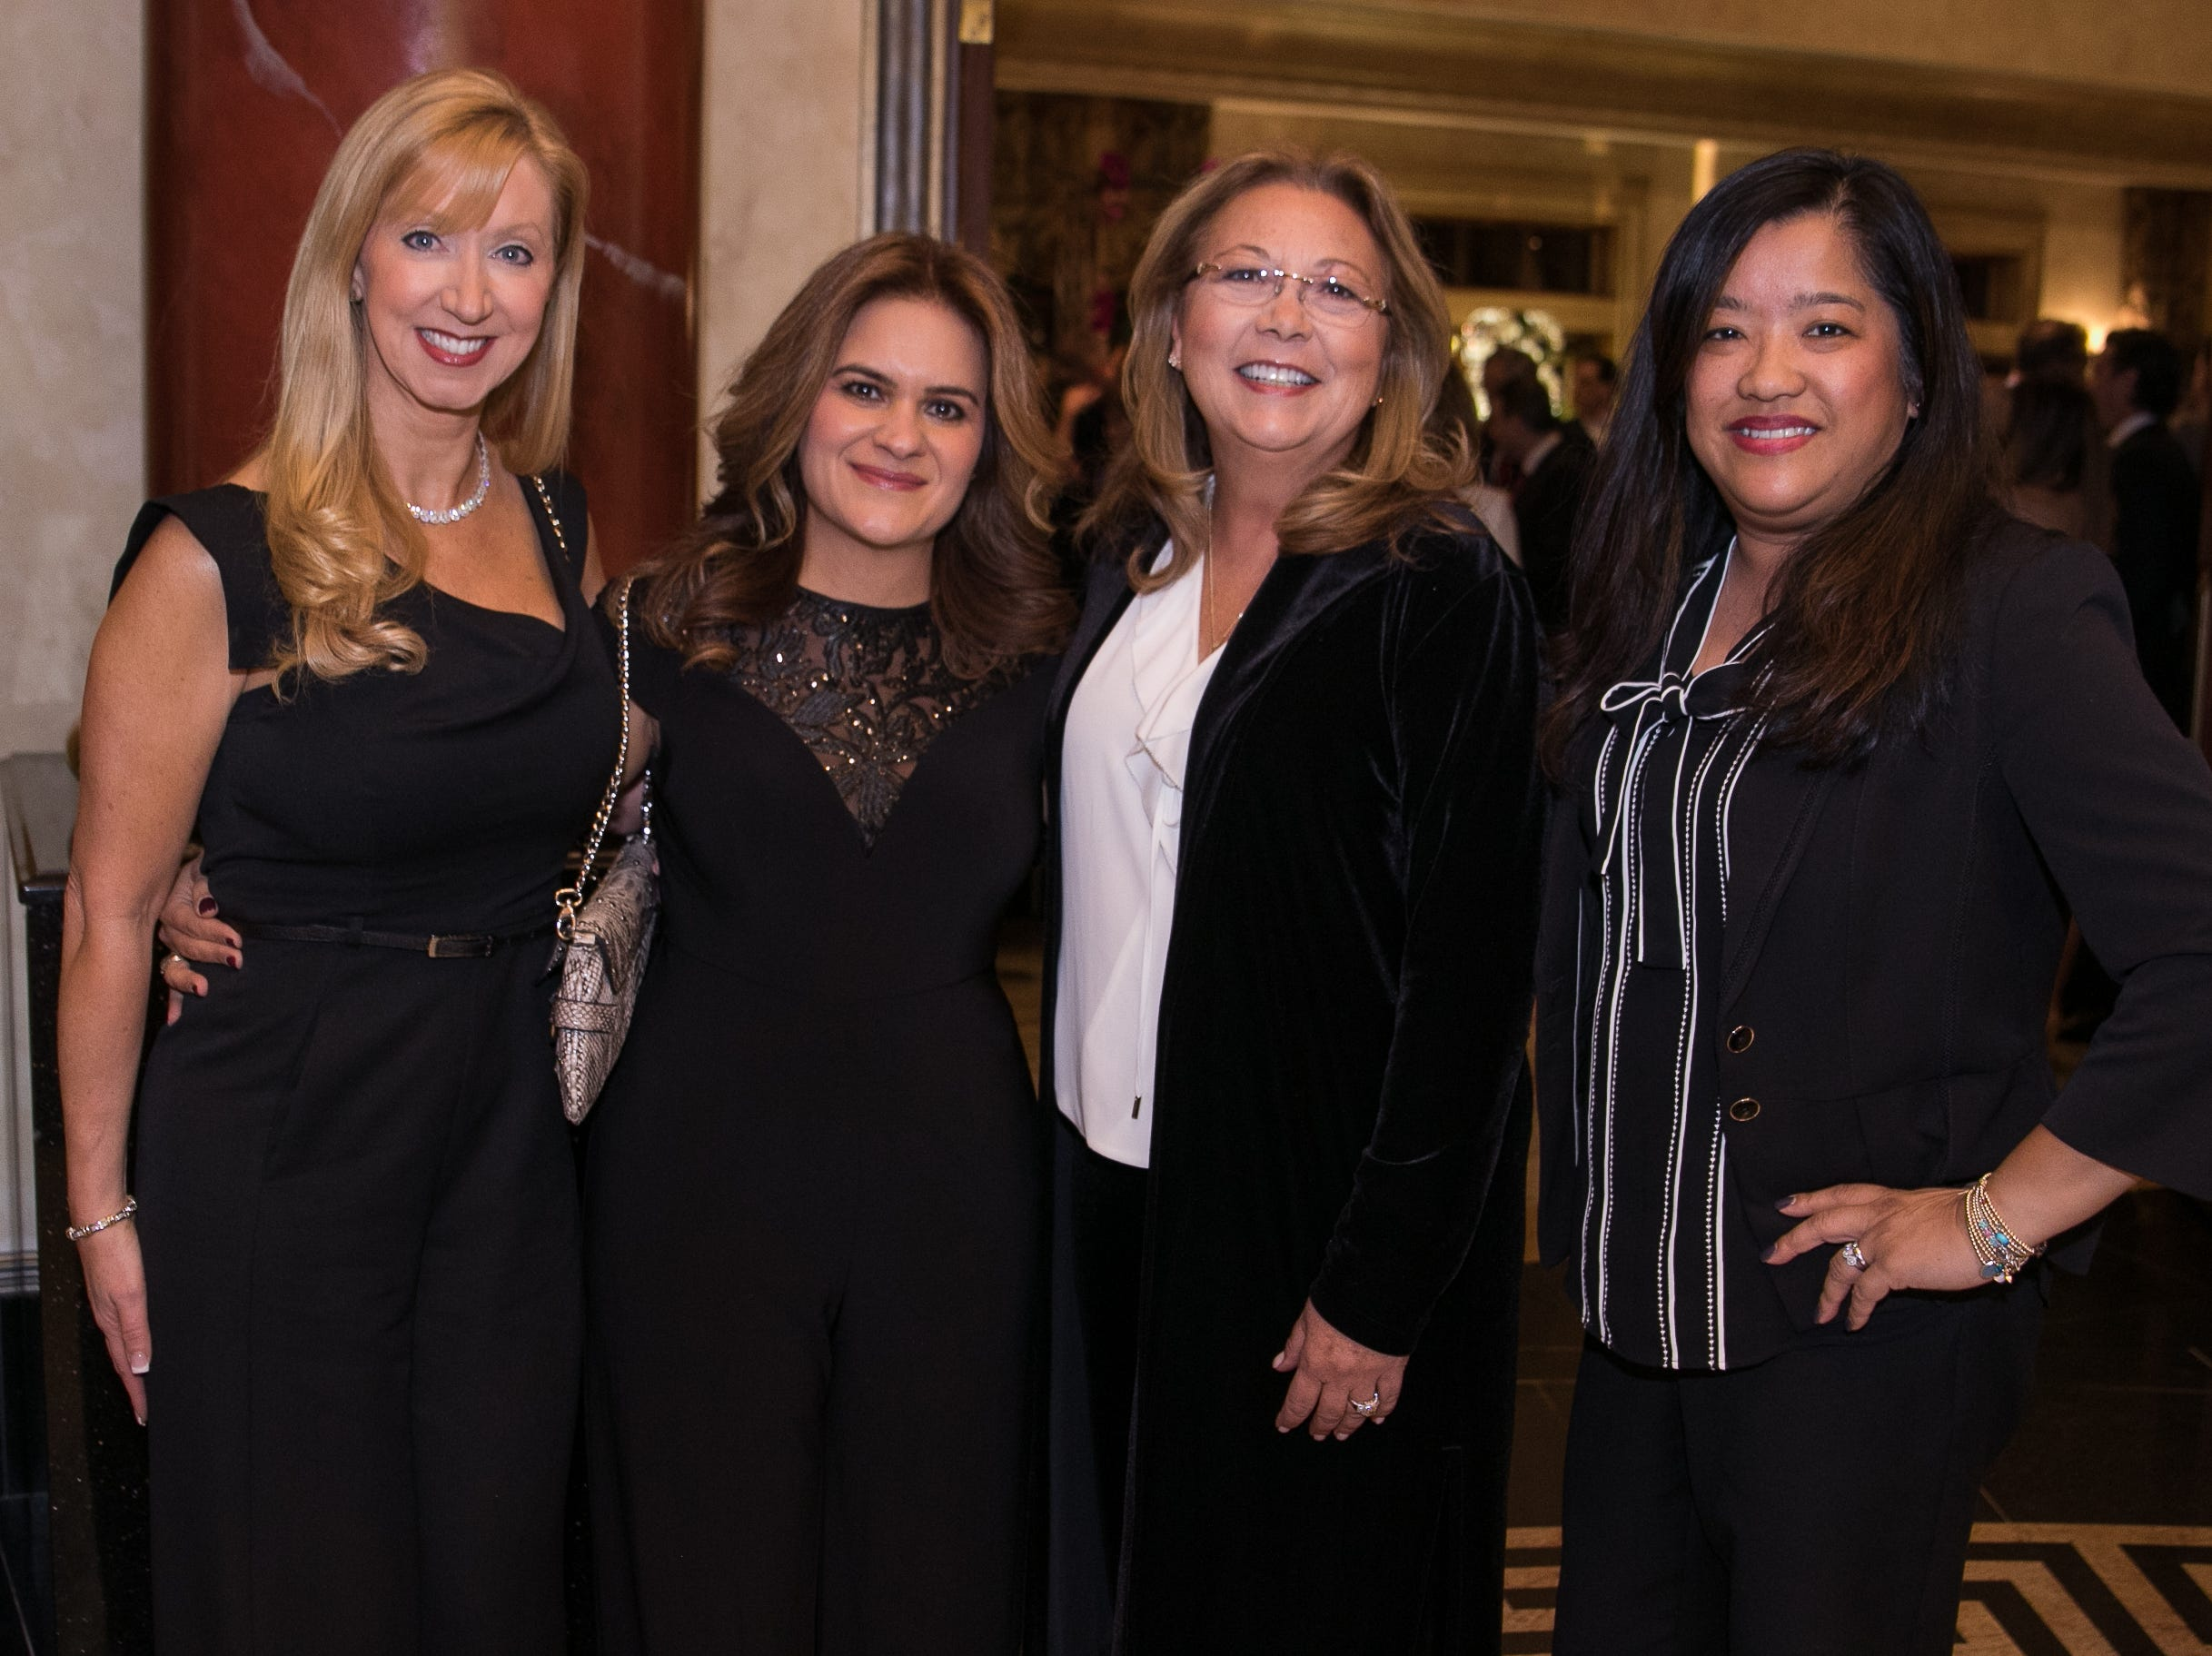 Jane Potenza, Talin Murad, Michele Whiteman, Maria Stewart. Don Bosco Prep held it's 17th Annual President's Gala at The Venitian in Garfield, NJ. 10/25/2018